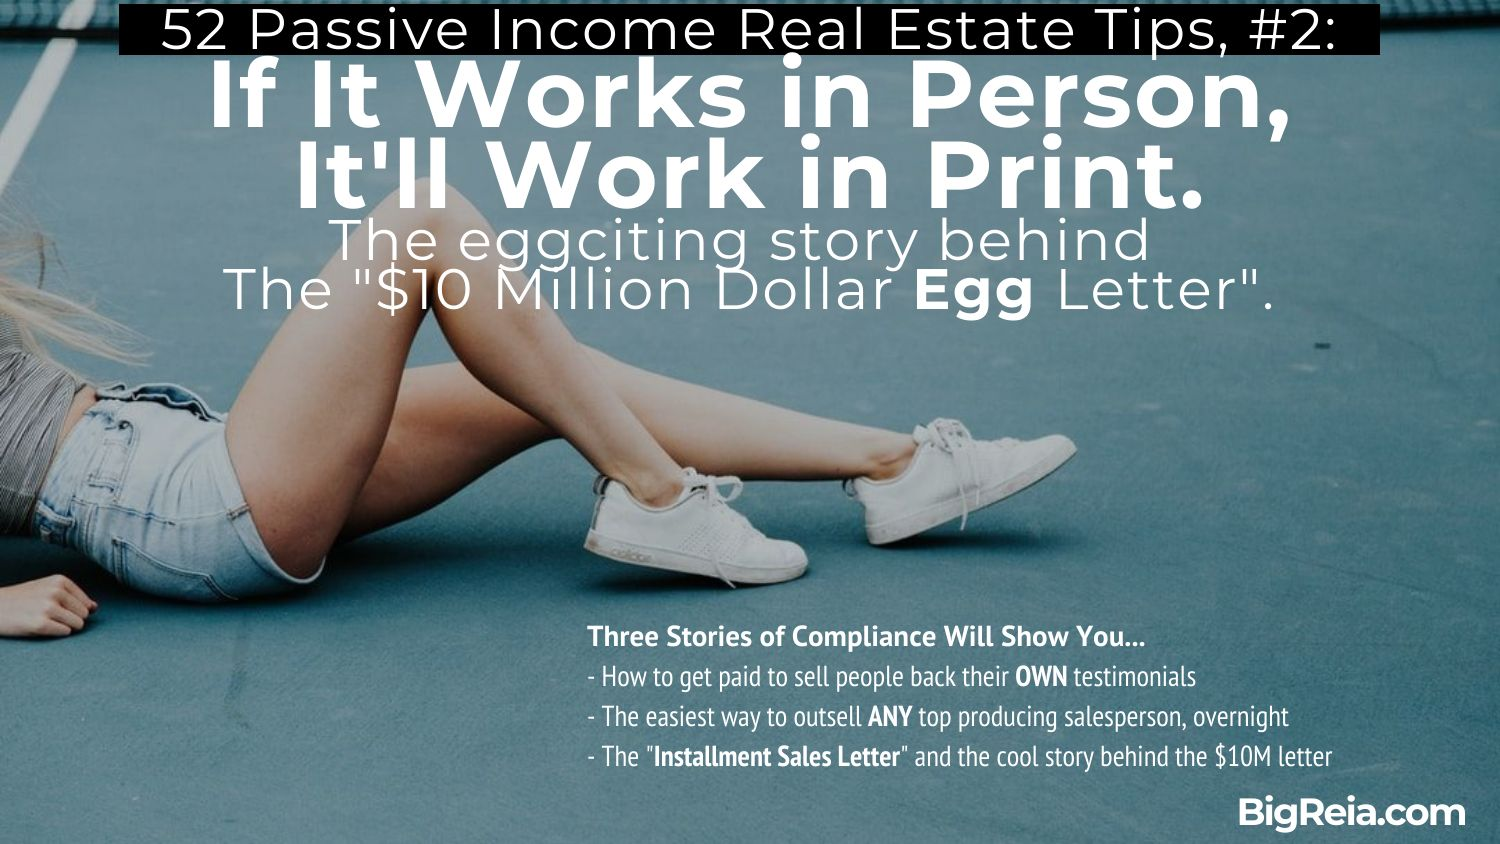 Introduction to the 10 million egg letter and copywriting for real estate investors - BigReia.com